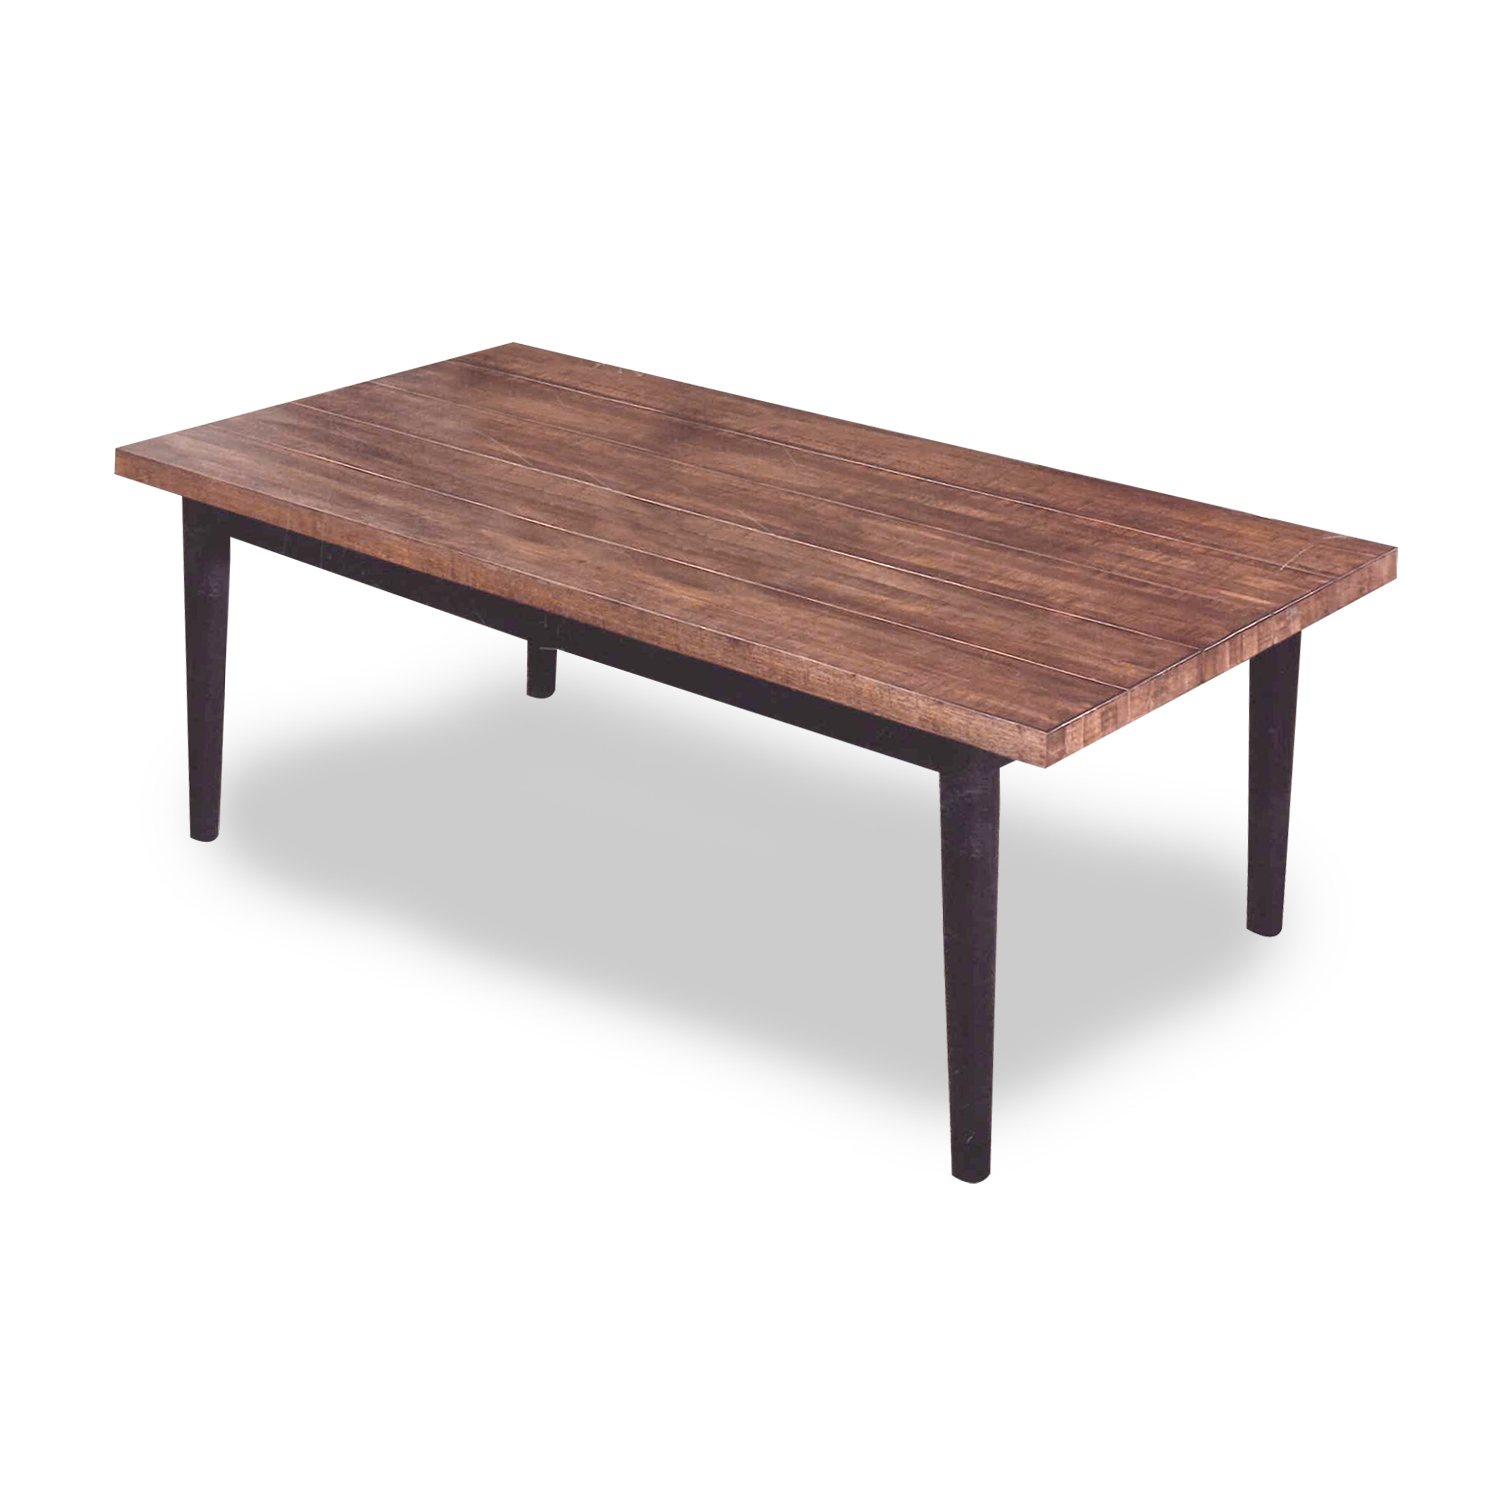 dining table 3819.jpg